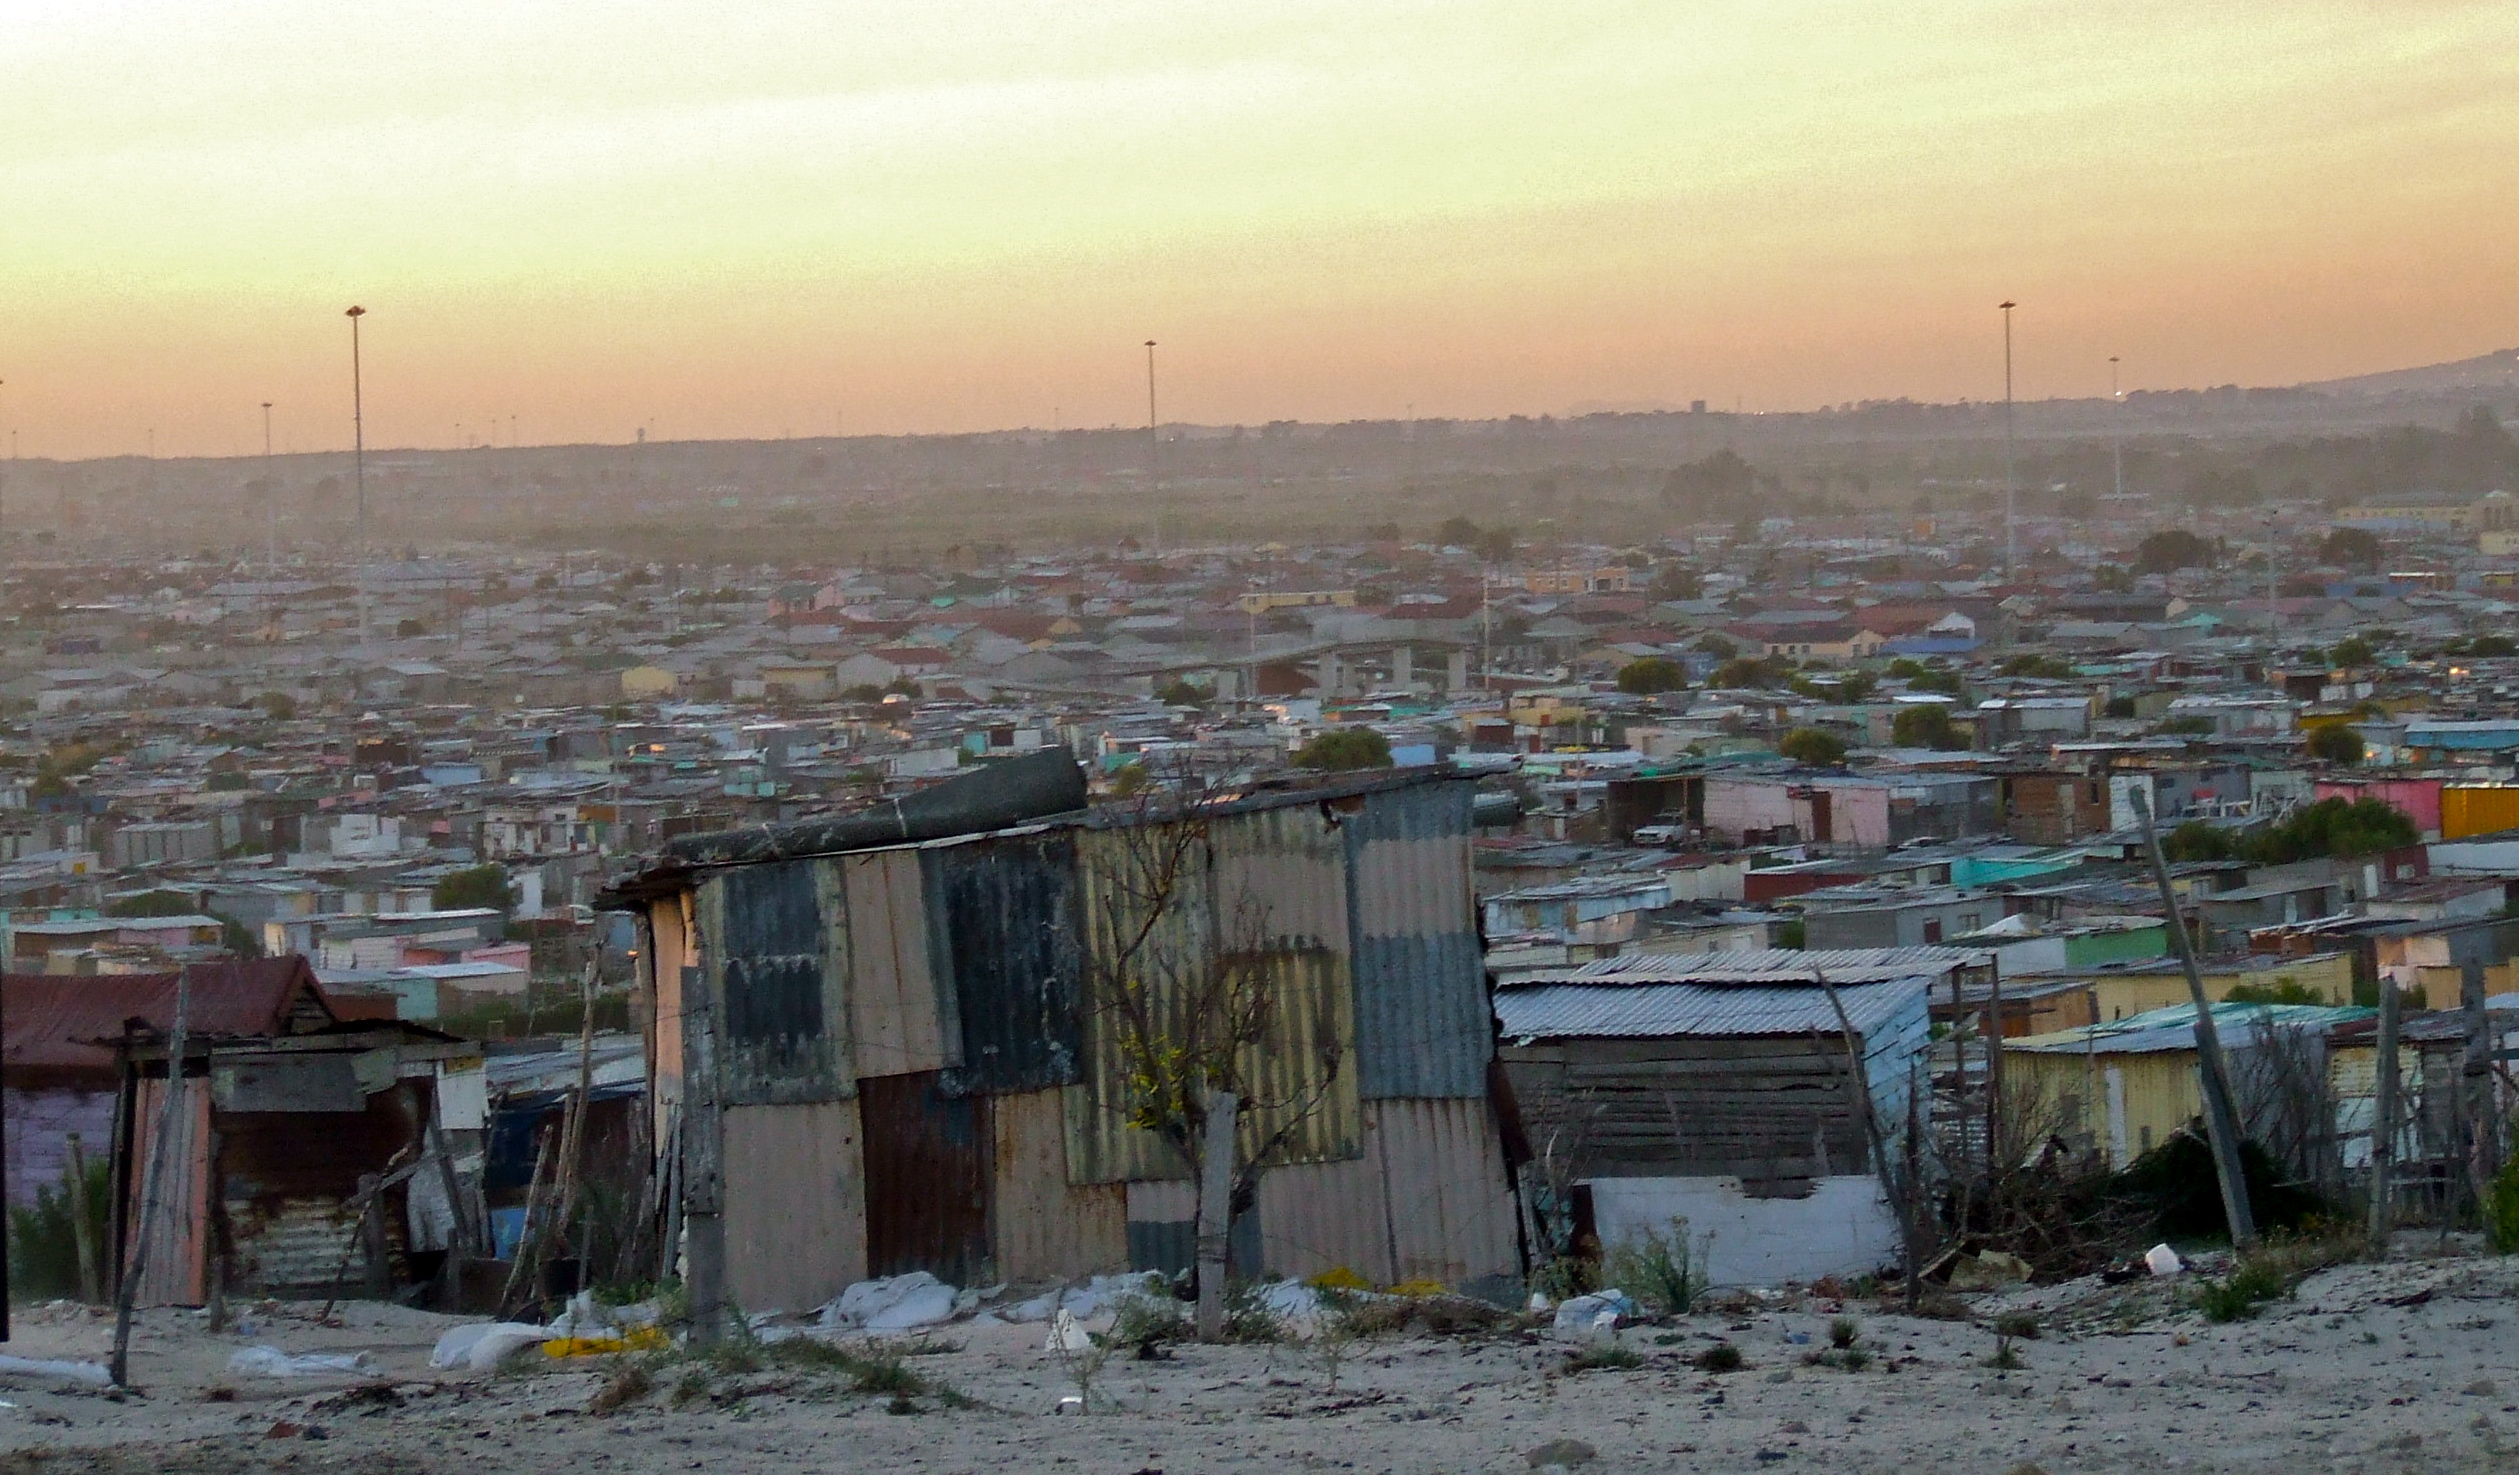 poverty essays south africa November 12 11-11-2017 the harmful consequences of poverty essayspoverty is one of the main the bloody civil rights issues the south america, and the sub saharan.